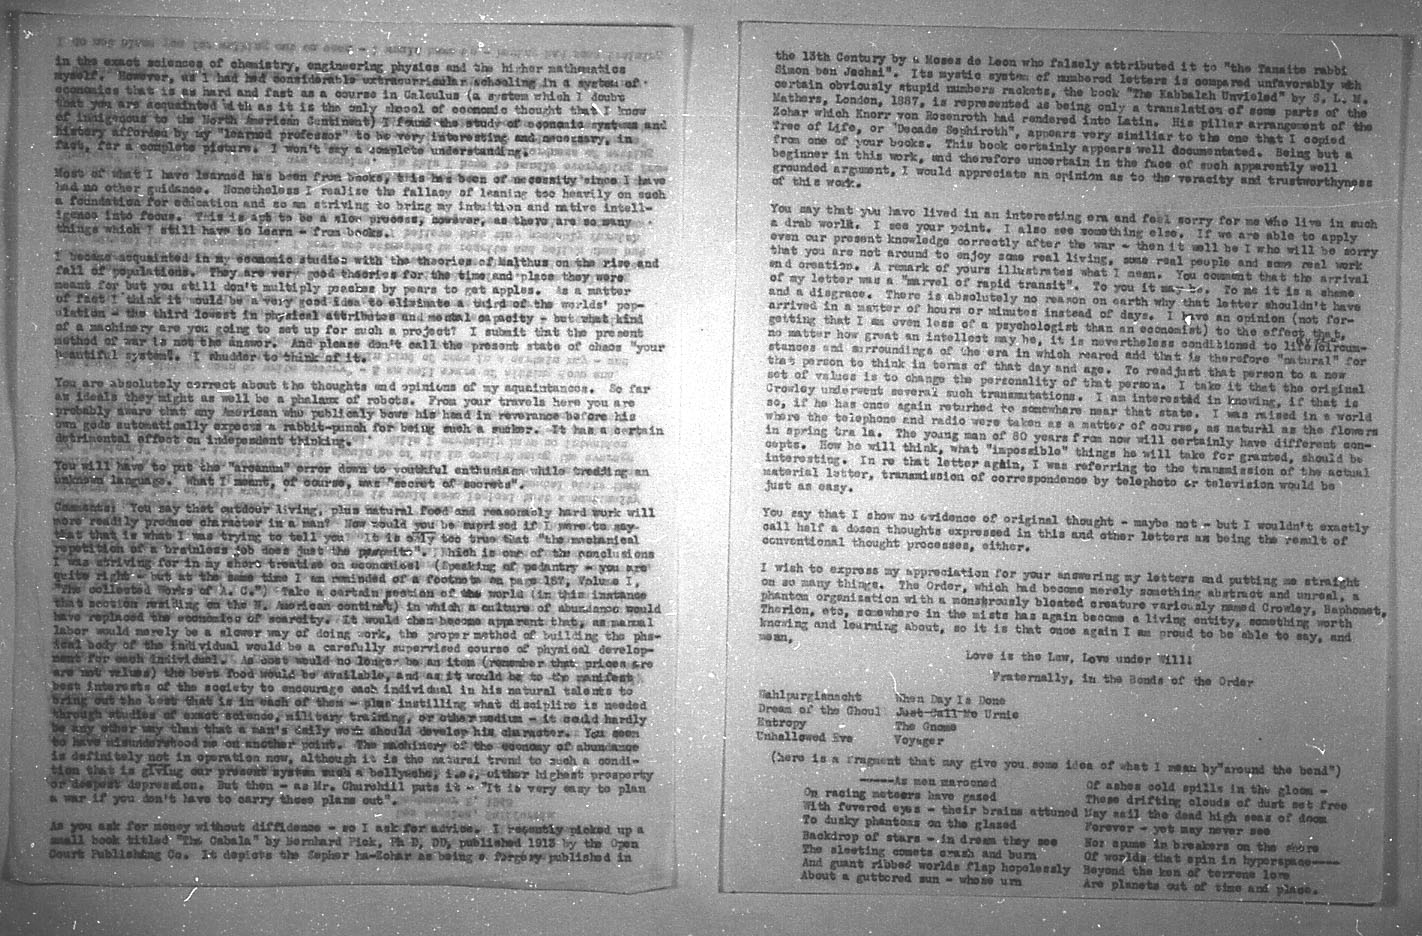 (09/02/1943) Grady McMurtry to Aleister Crowley #3